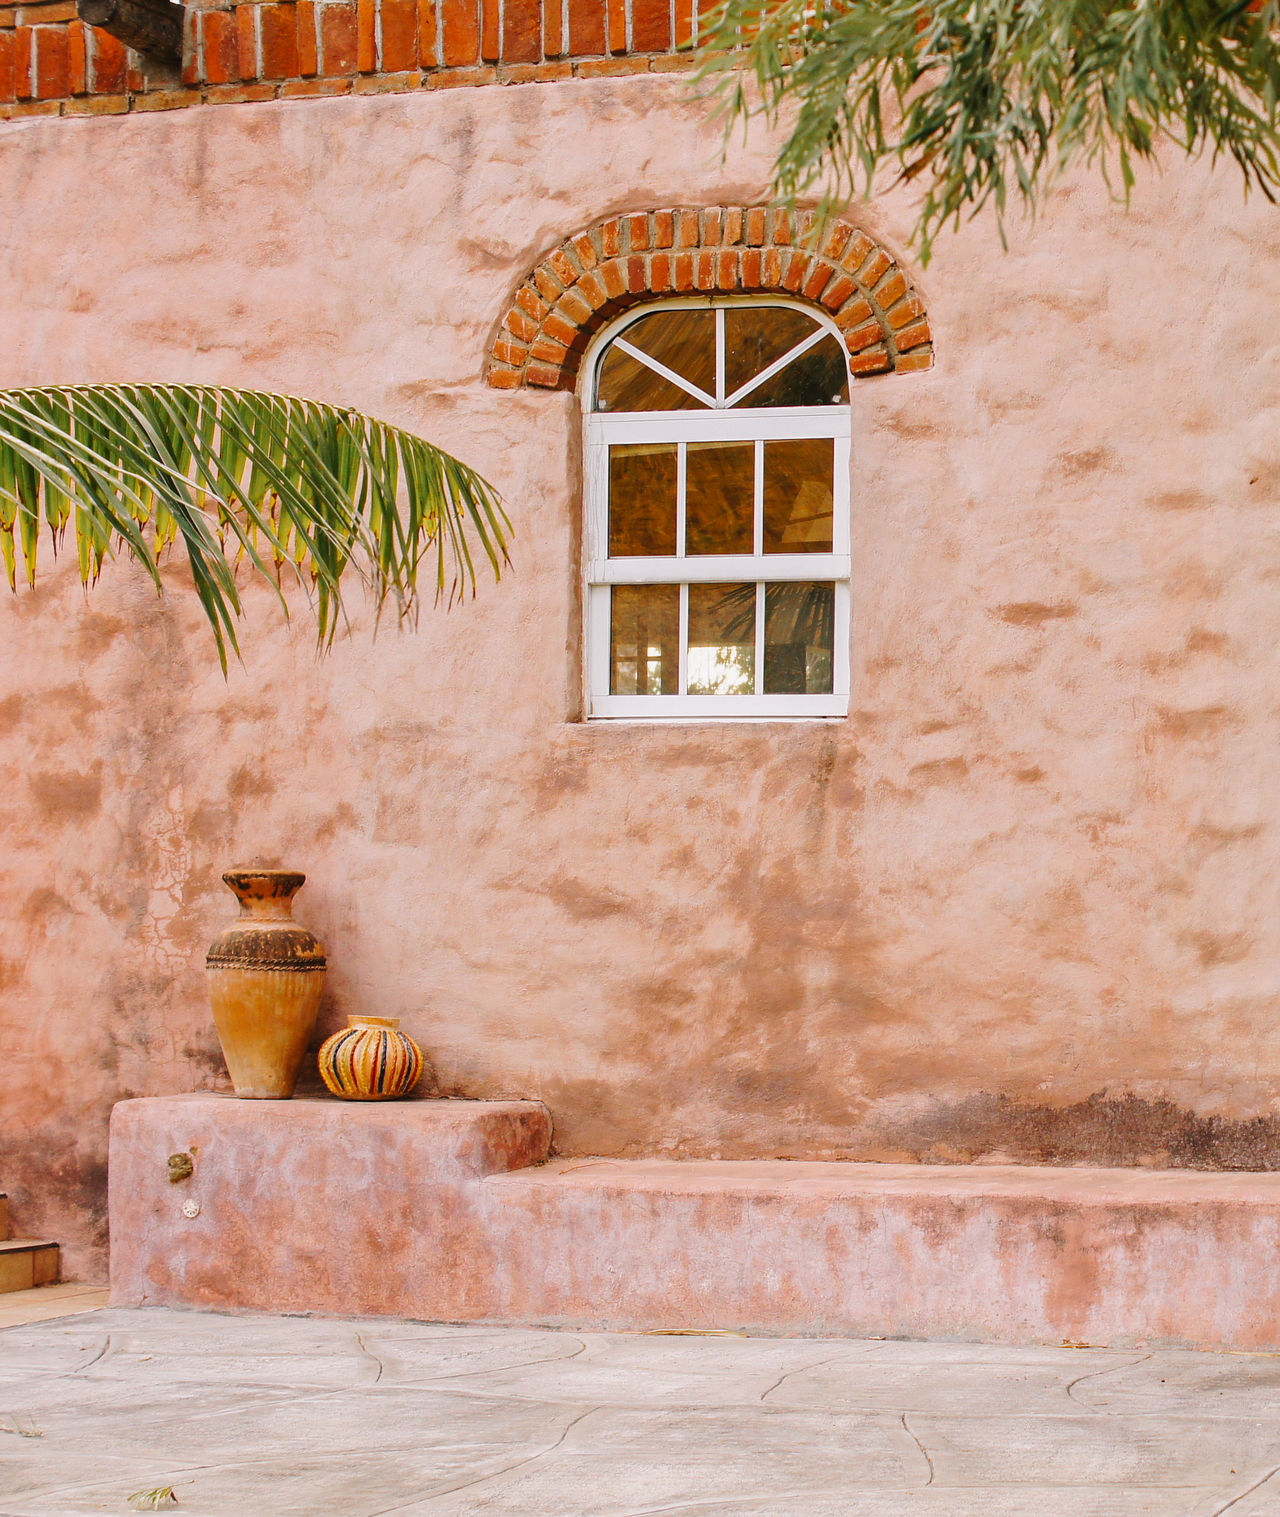 Jarrones Architecture Building Exterior Crafts Day Façade No People Outdoors Pastel Pink Plant Travel Window